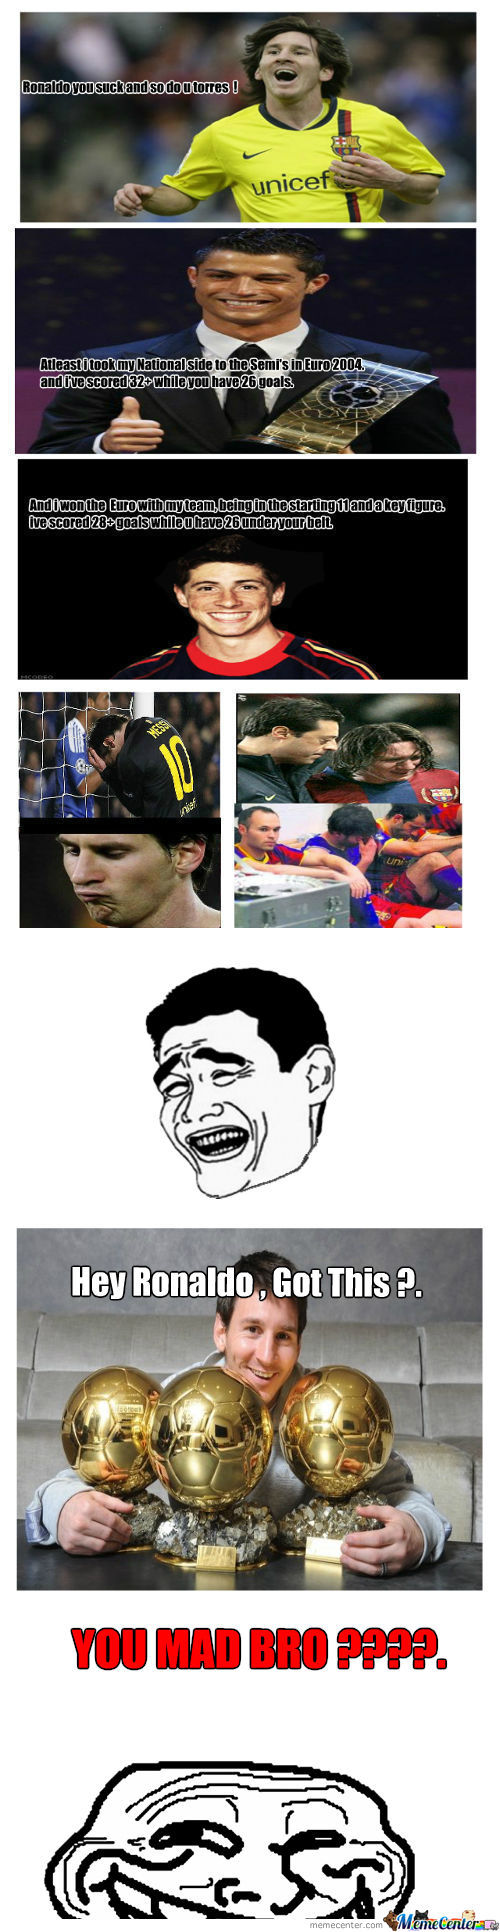 [RMX] Hahahha Messi Trolled